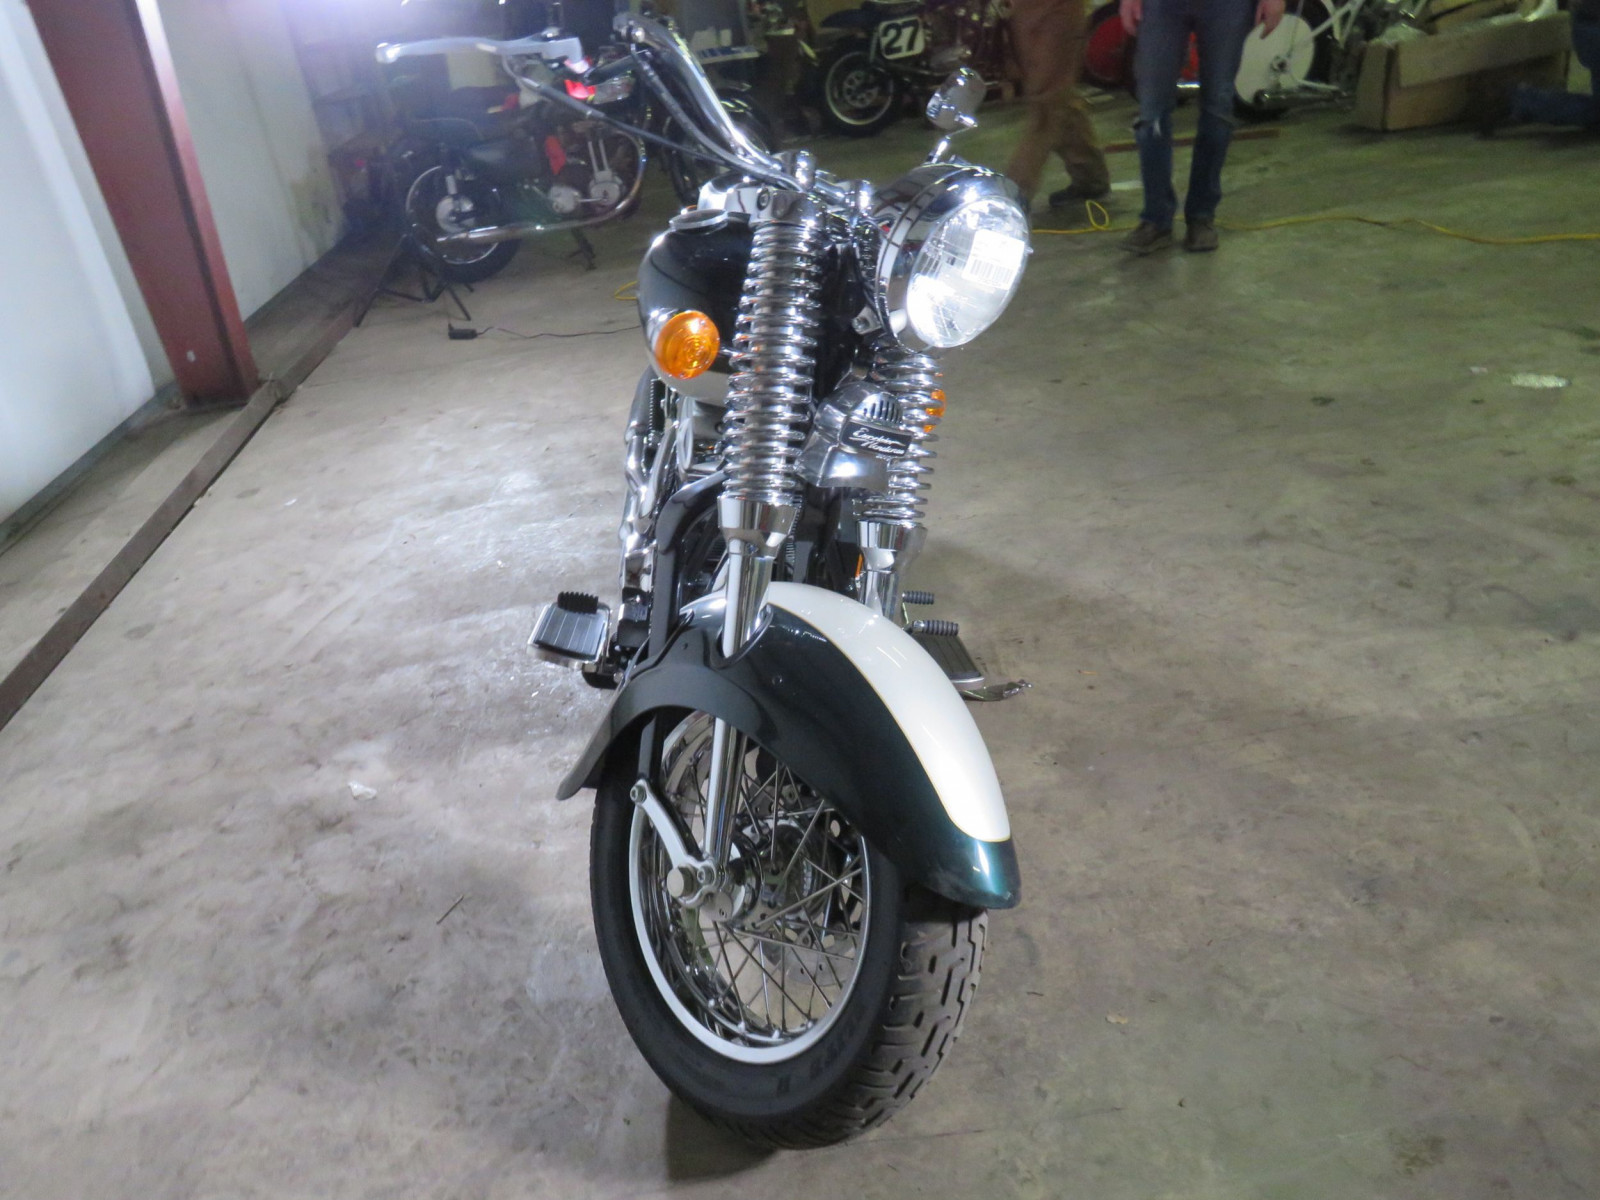 2000 Excelsior Henderson Super X Motorcycle - Image 2